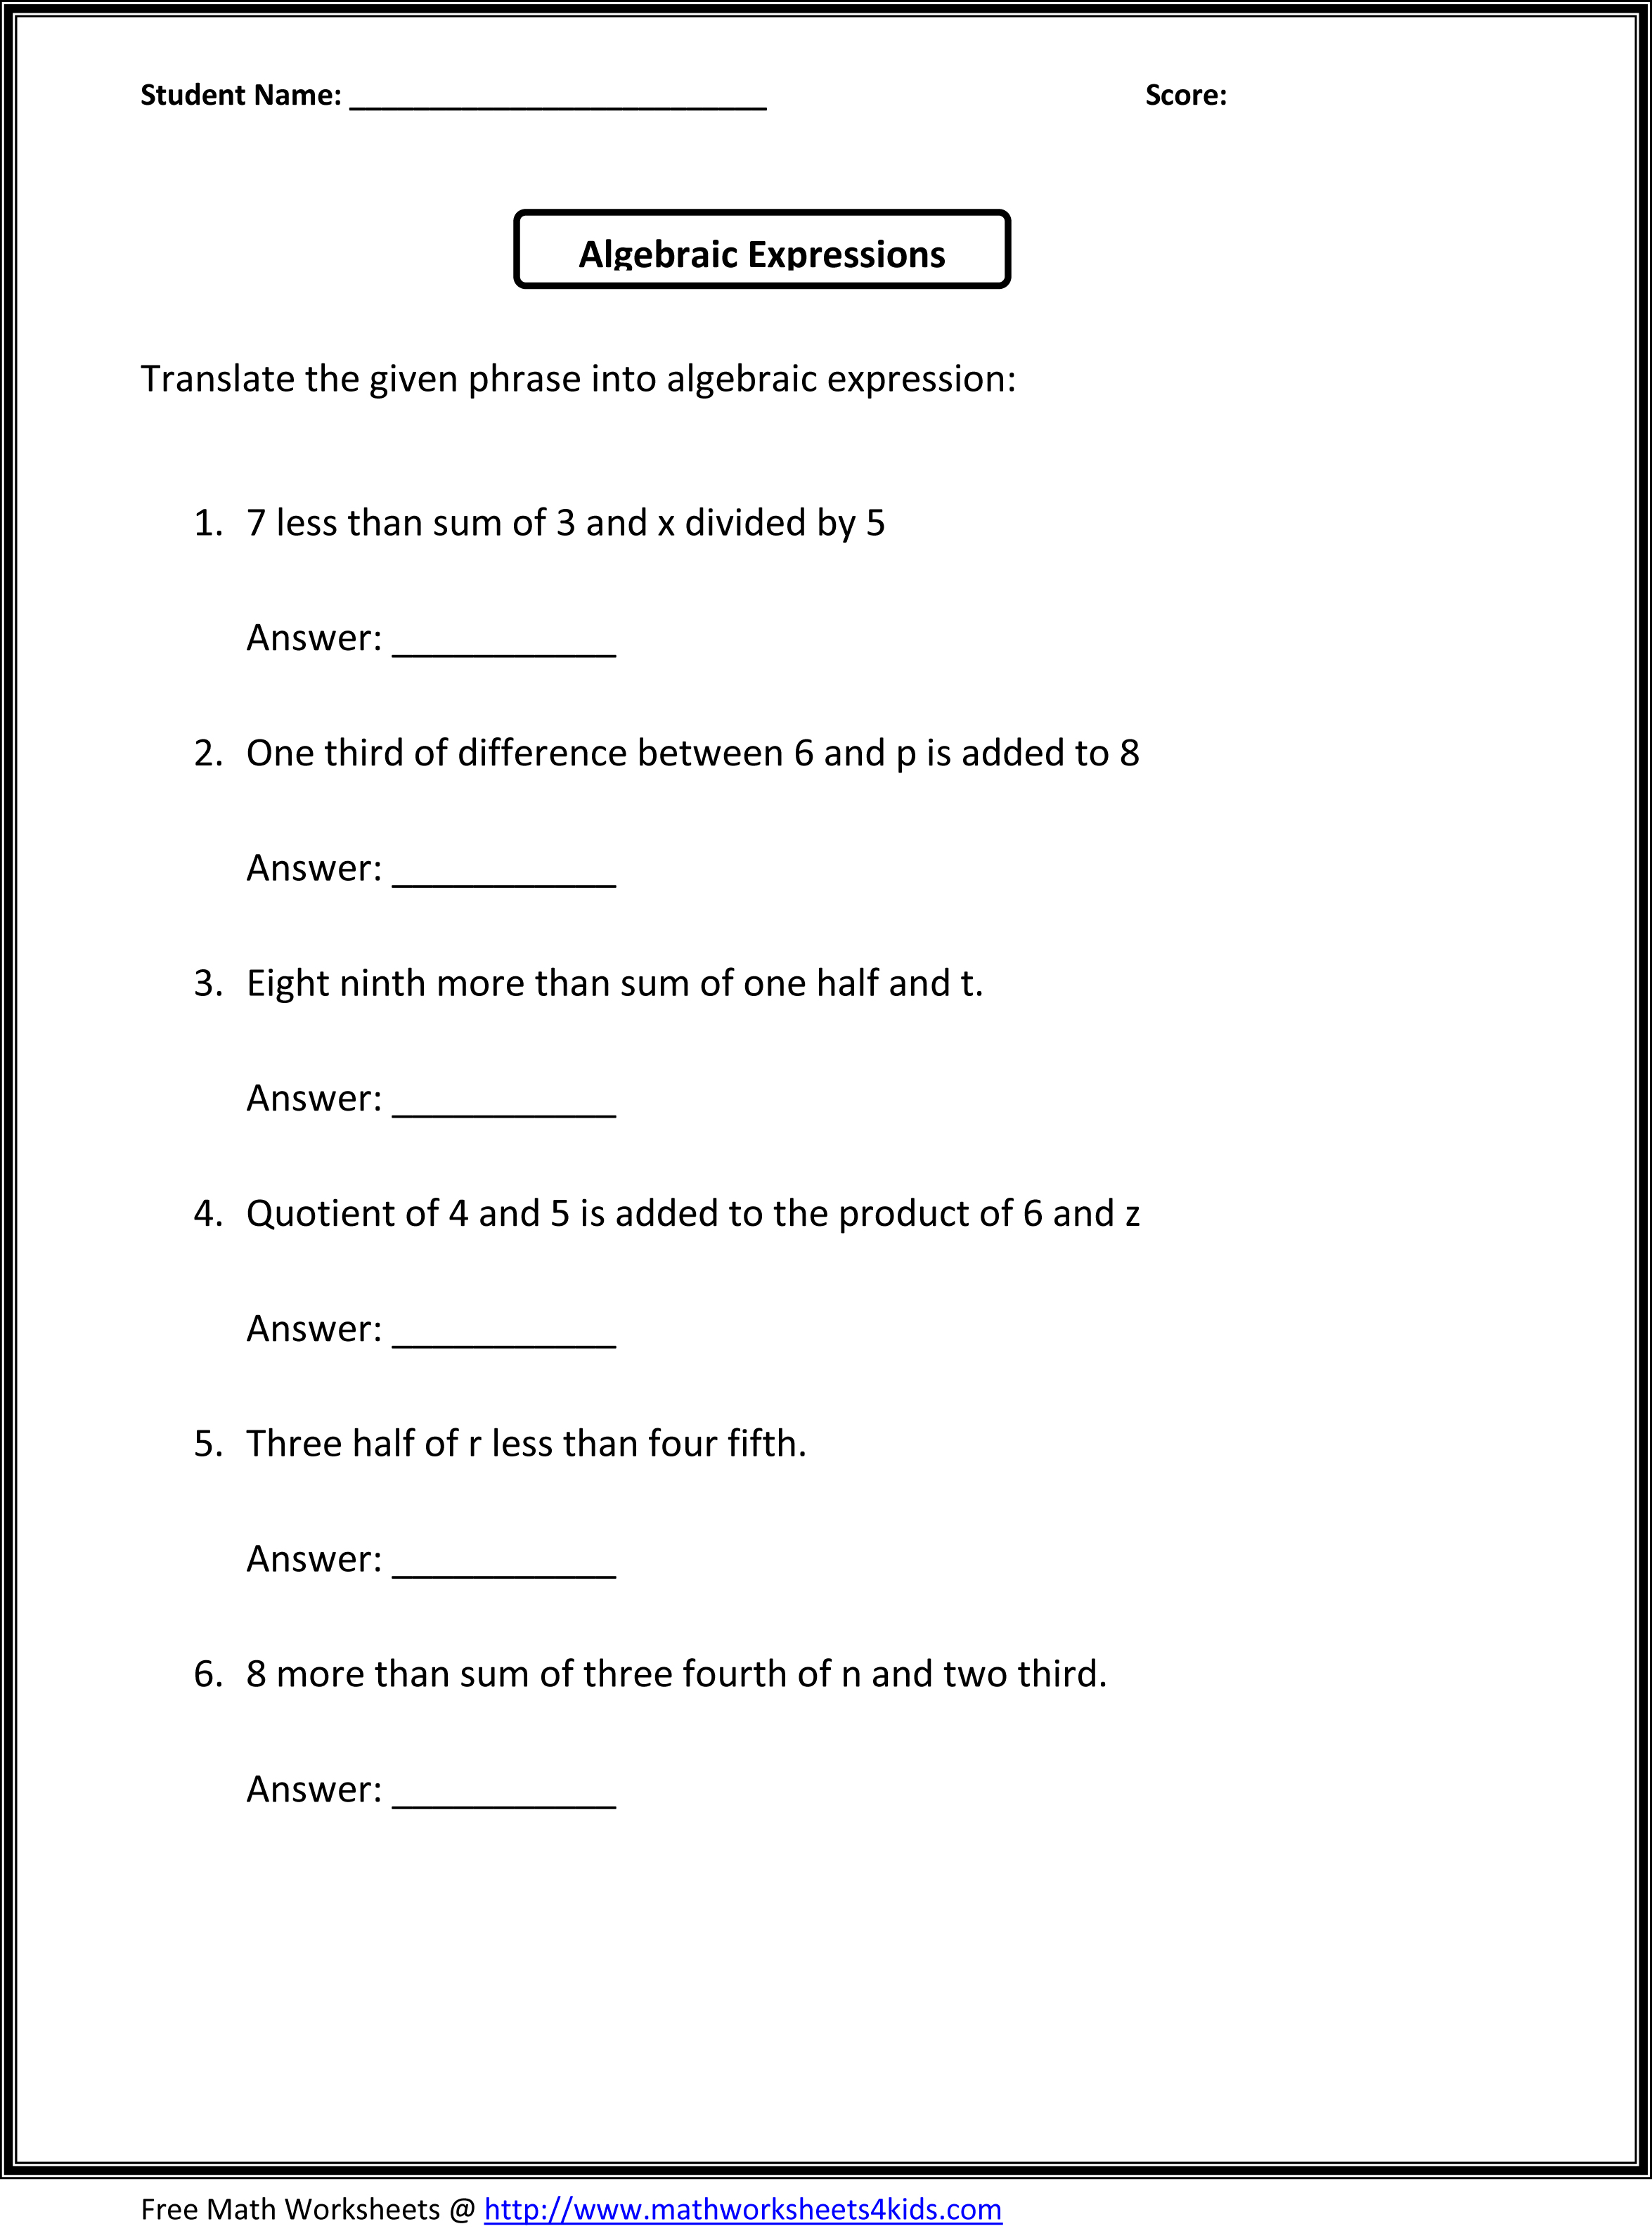 13 Best Images Of 7th Grade Probability Worksheets With